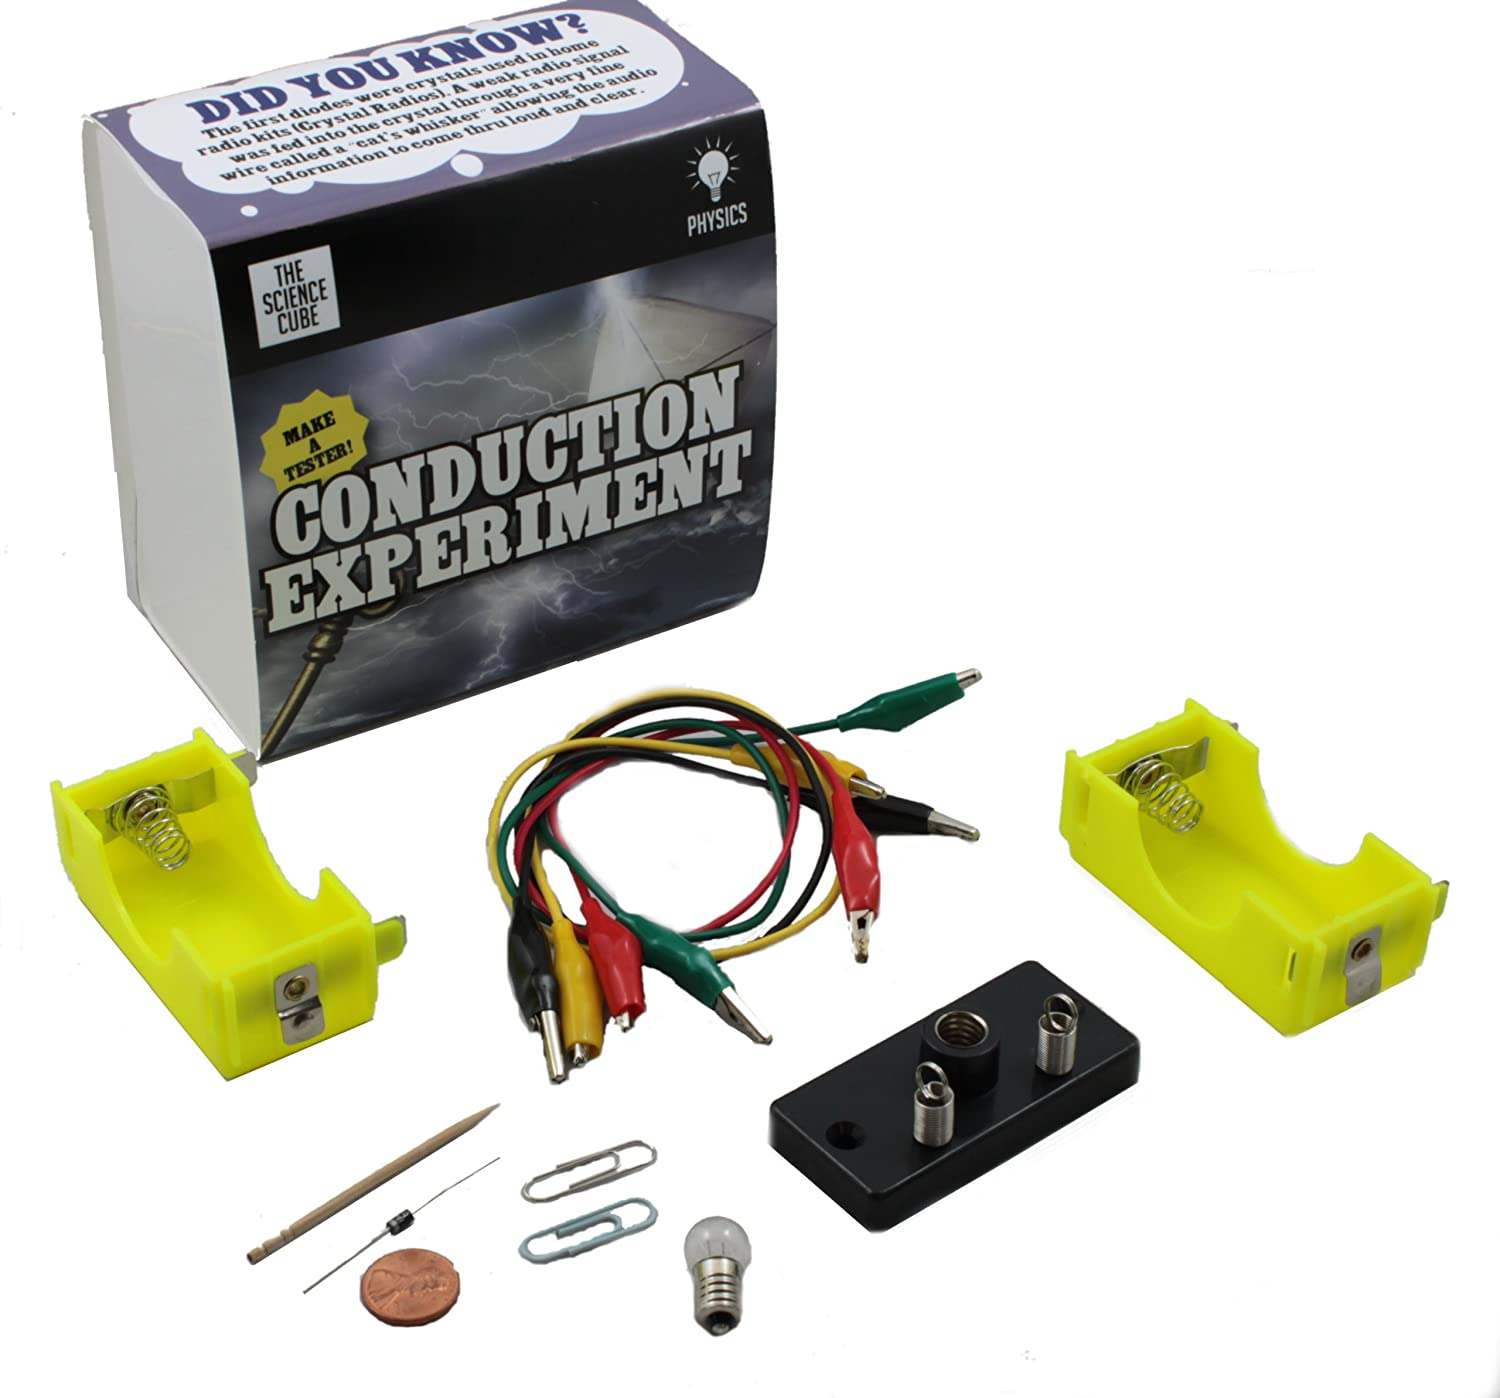 The Science Cube Electrical Conduction Experiment Kit Squishy Circuits Industrial Scientific